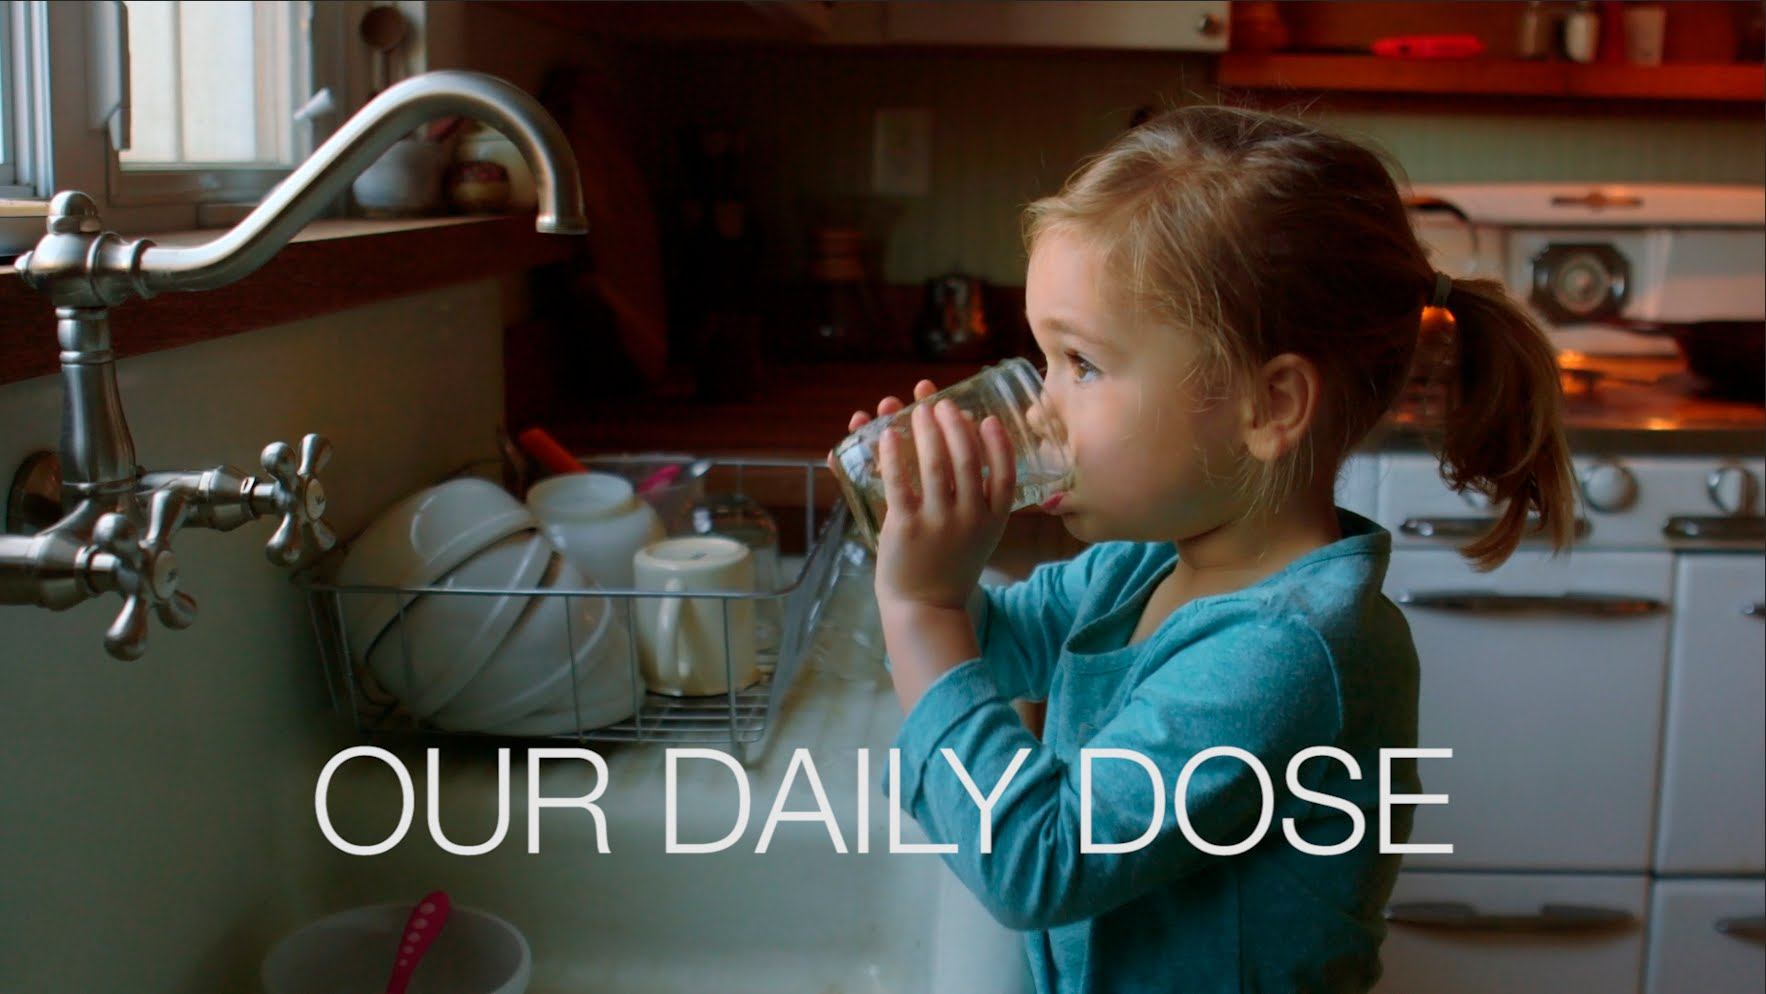 Two Major Legal Victories in Federal Court Case to End Water Fluoridation